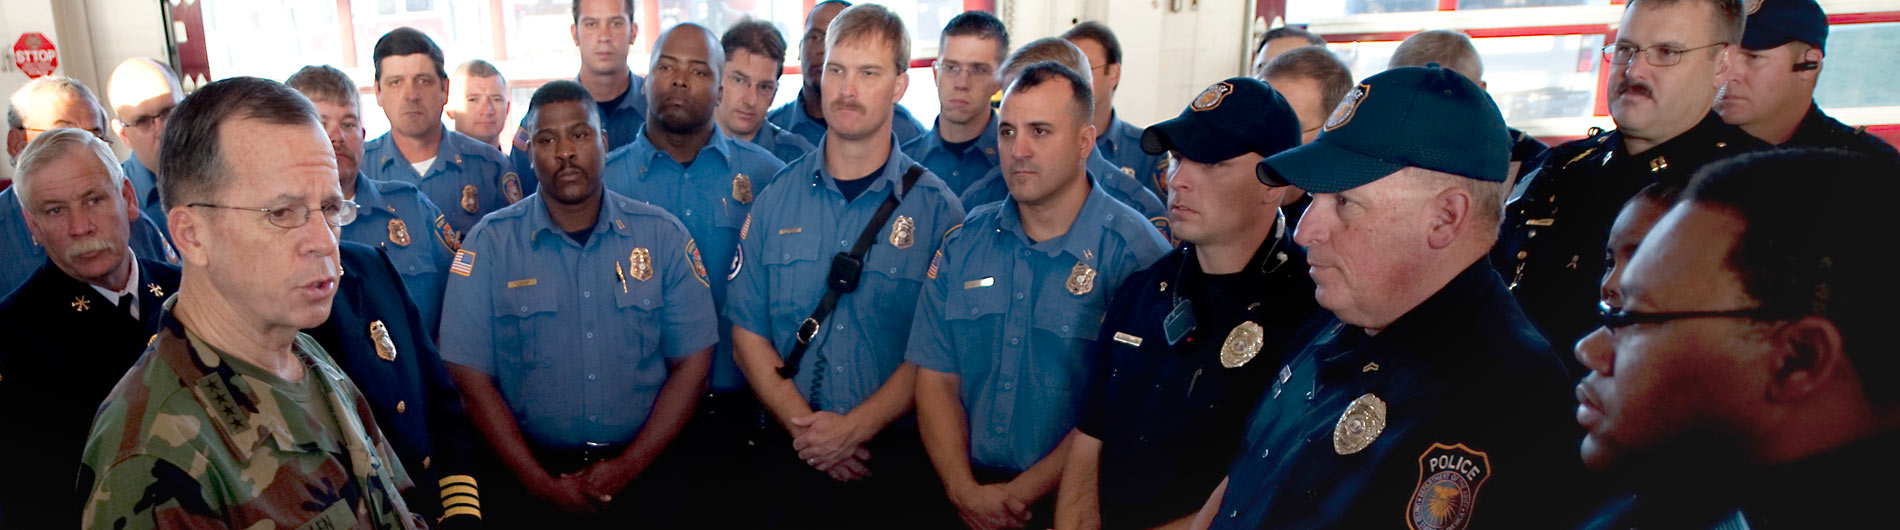 Militarize or disarm? Reforming the police for the 21st century: Future of policing